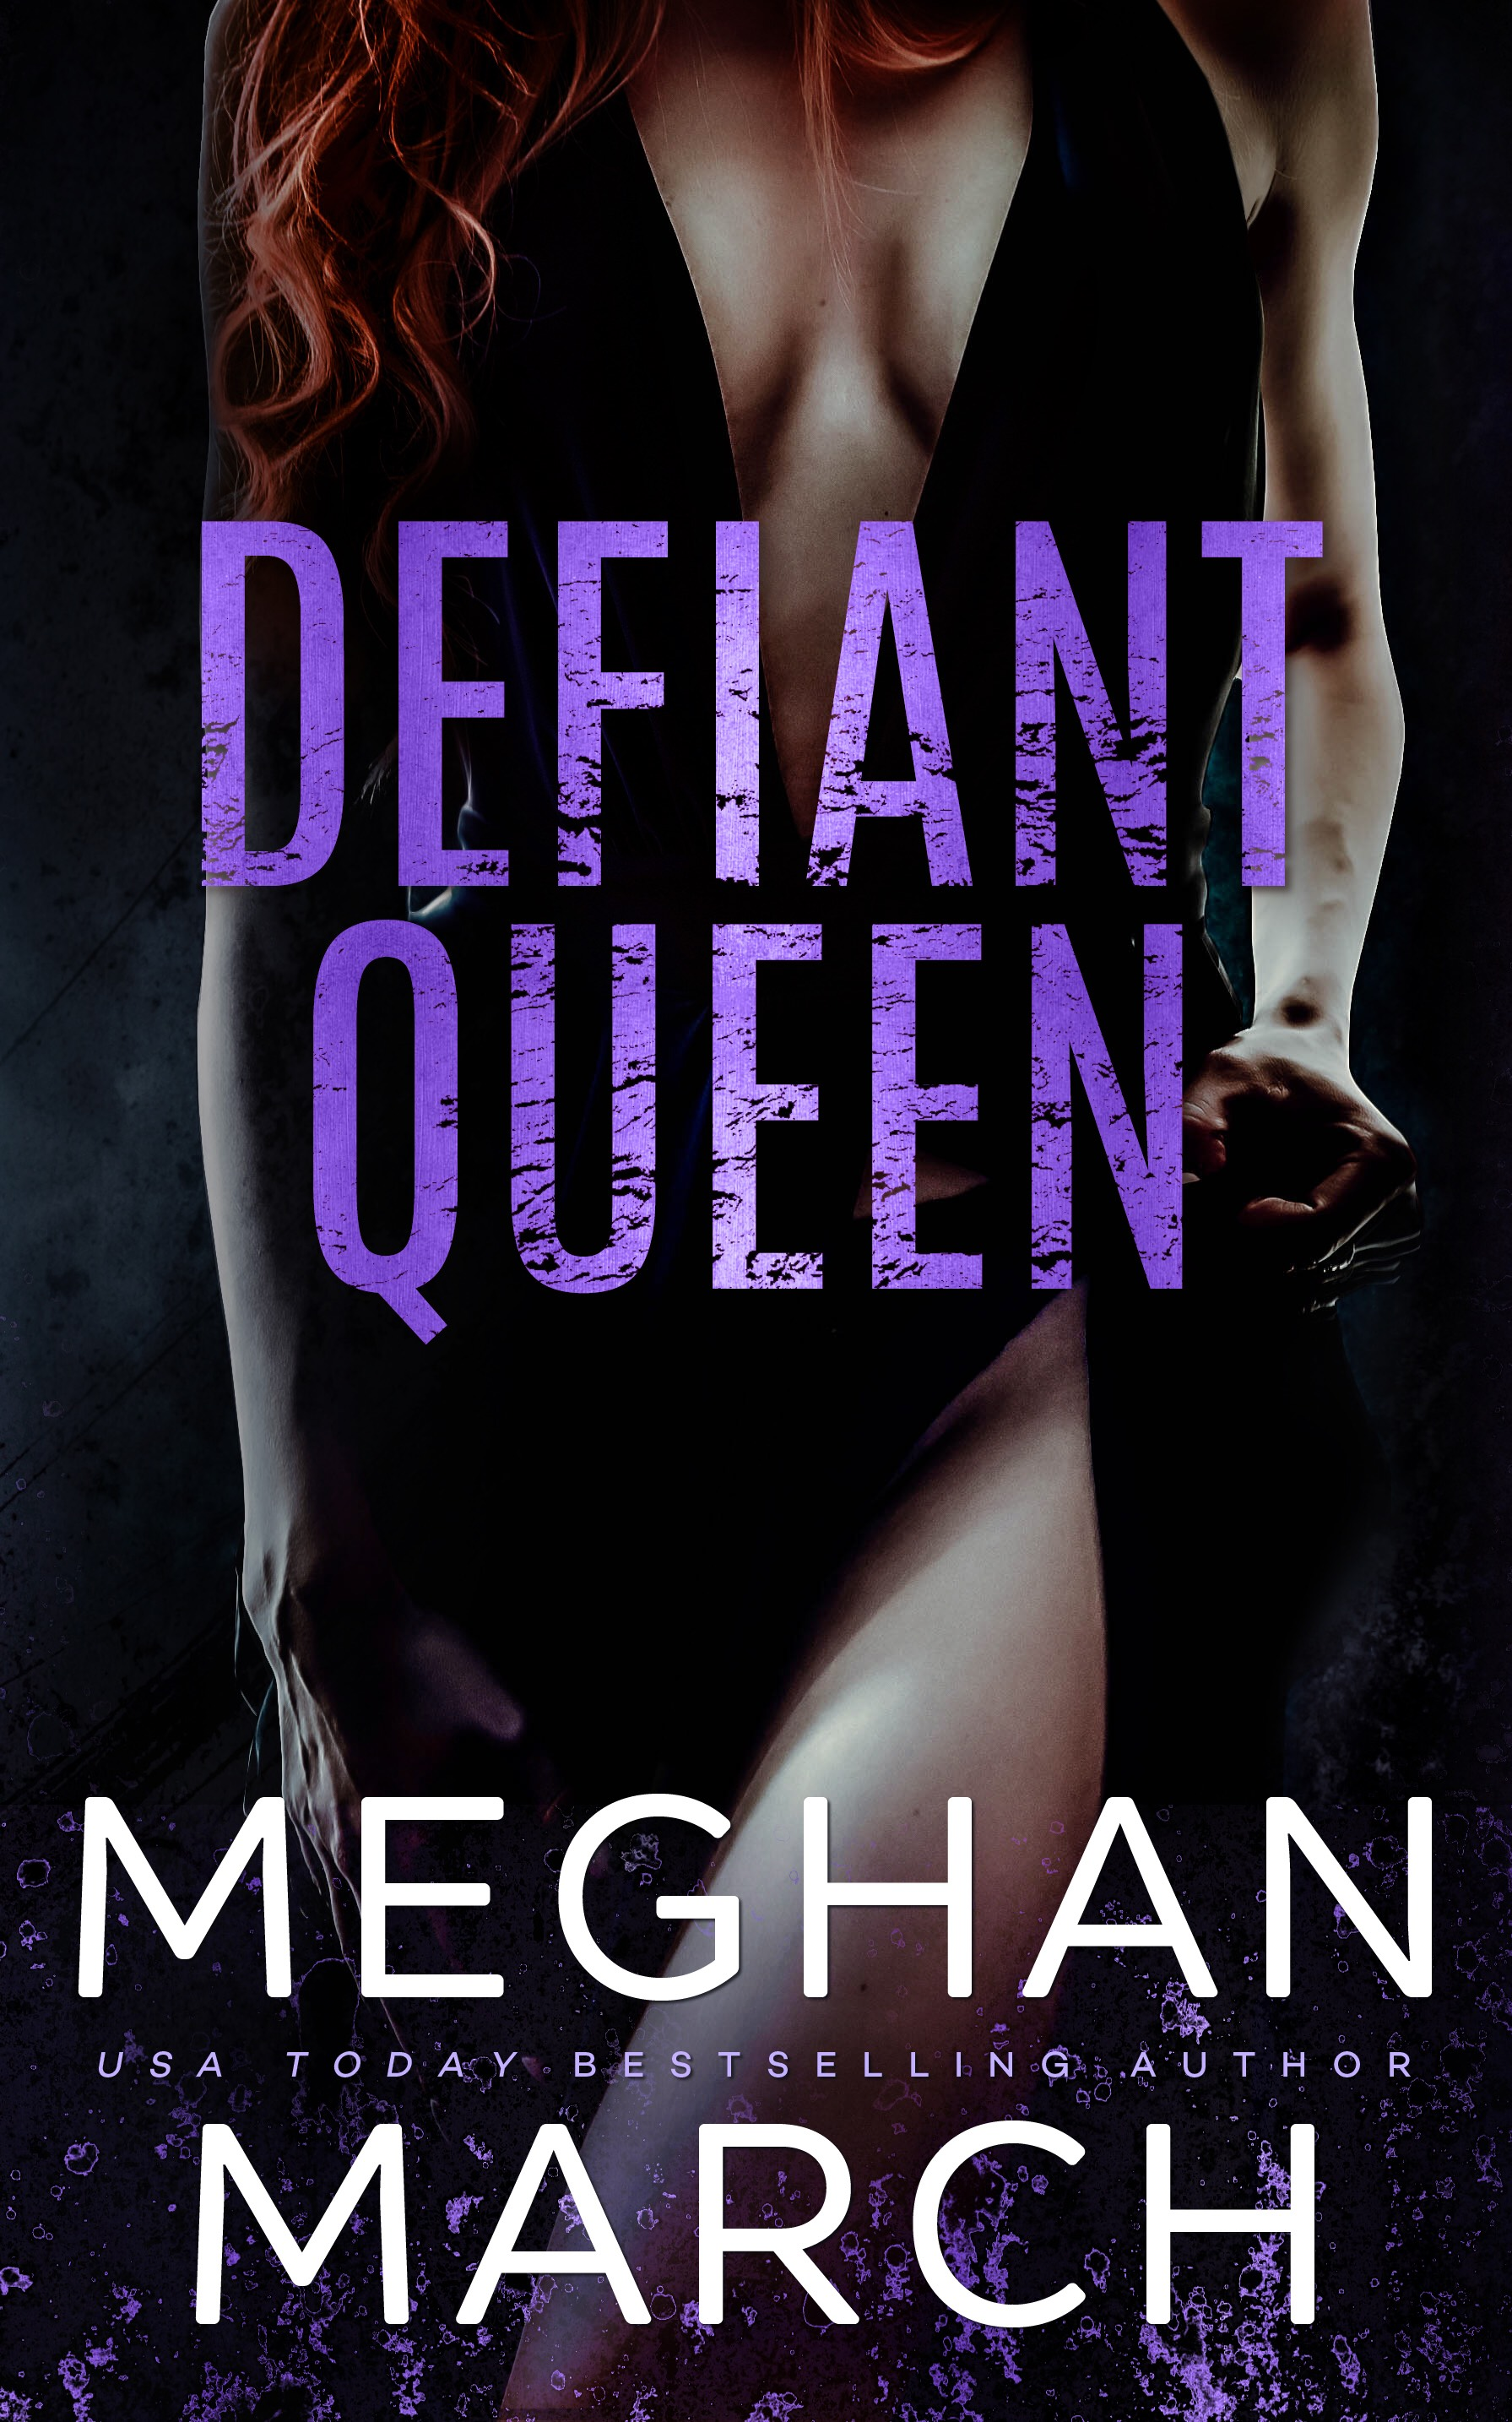 The Mount Trilogy continues with  Defiant Queen ...   I'm his entertainment. His toy. Payment on a debt. I tell myself I hate him, but every time he walks into the room, my body betrays me. How can I want him and fear him in the same moment? They told me he'd mess with my head. Make it go to war with my body. But I didn't realize it would be complete anarchy. I should've known better. When Mount's involved, there are no rules. I will not surrender. I will not show weakness. I'll stand my ground and make it out of this bargain with my heart and soul intact. But he has other plans . . .    Defiant Queen is the second book of the Mount Trilogy. Mount and Keira's story concludes in  Sinful Empire  .    Goodreads    ⇢ Amazon US  ⇢   Amazon UK ⇢   Amazon AU  ⇢     iBooks  ⇢    B&N  ⇢    Kobo